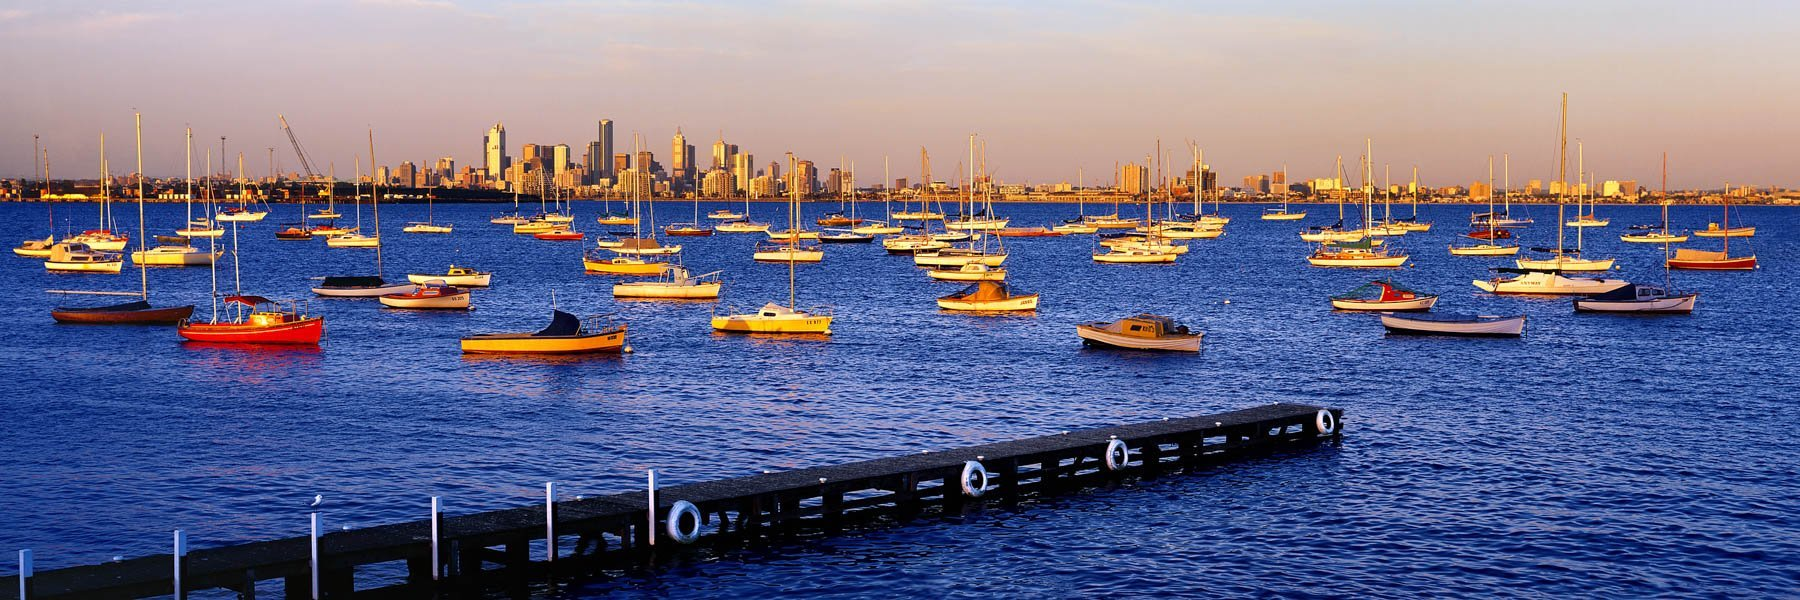 Yachts rocing gently at their moorings in golden afternoon light, Melbourne, Victoria, Australia.